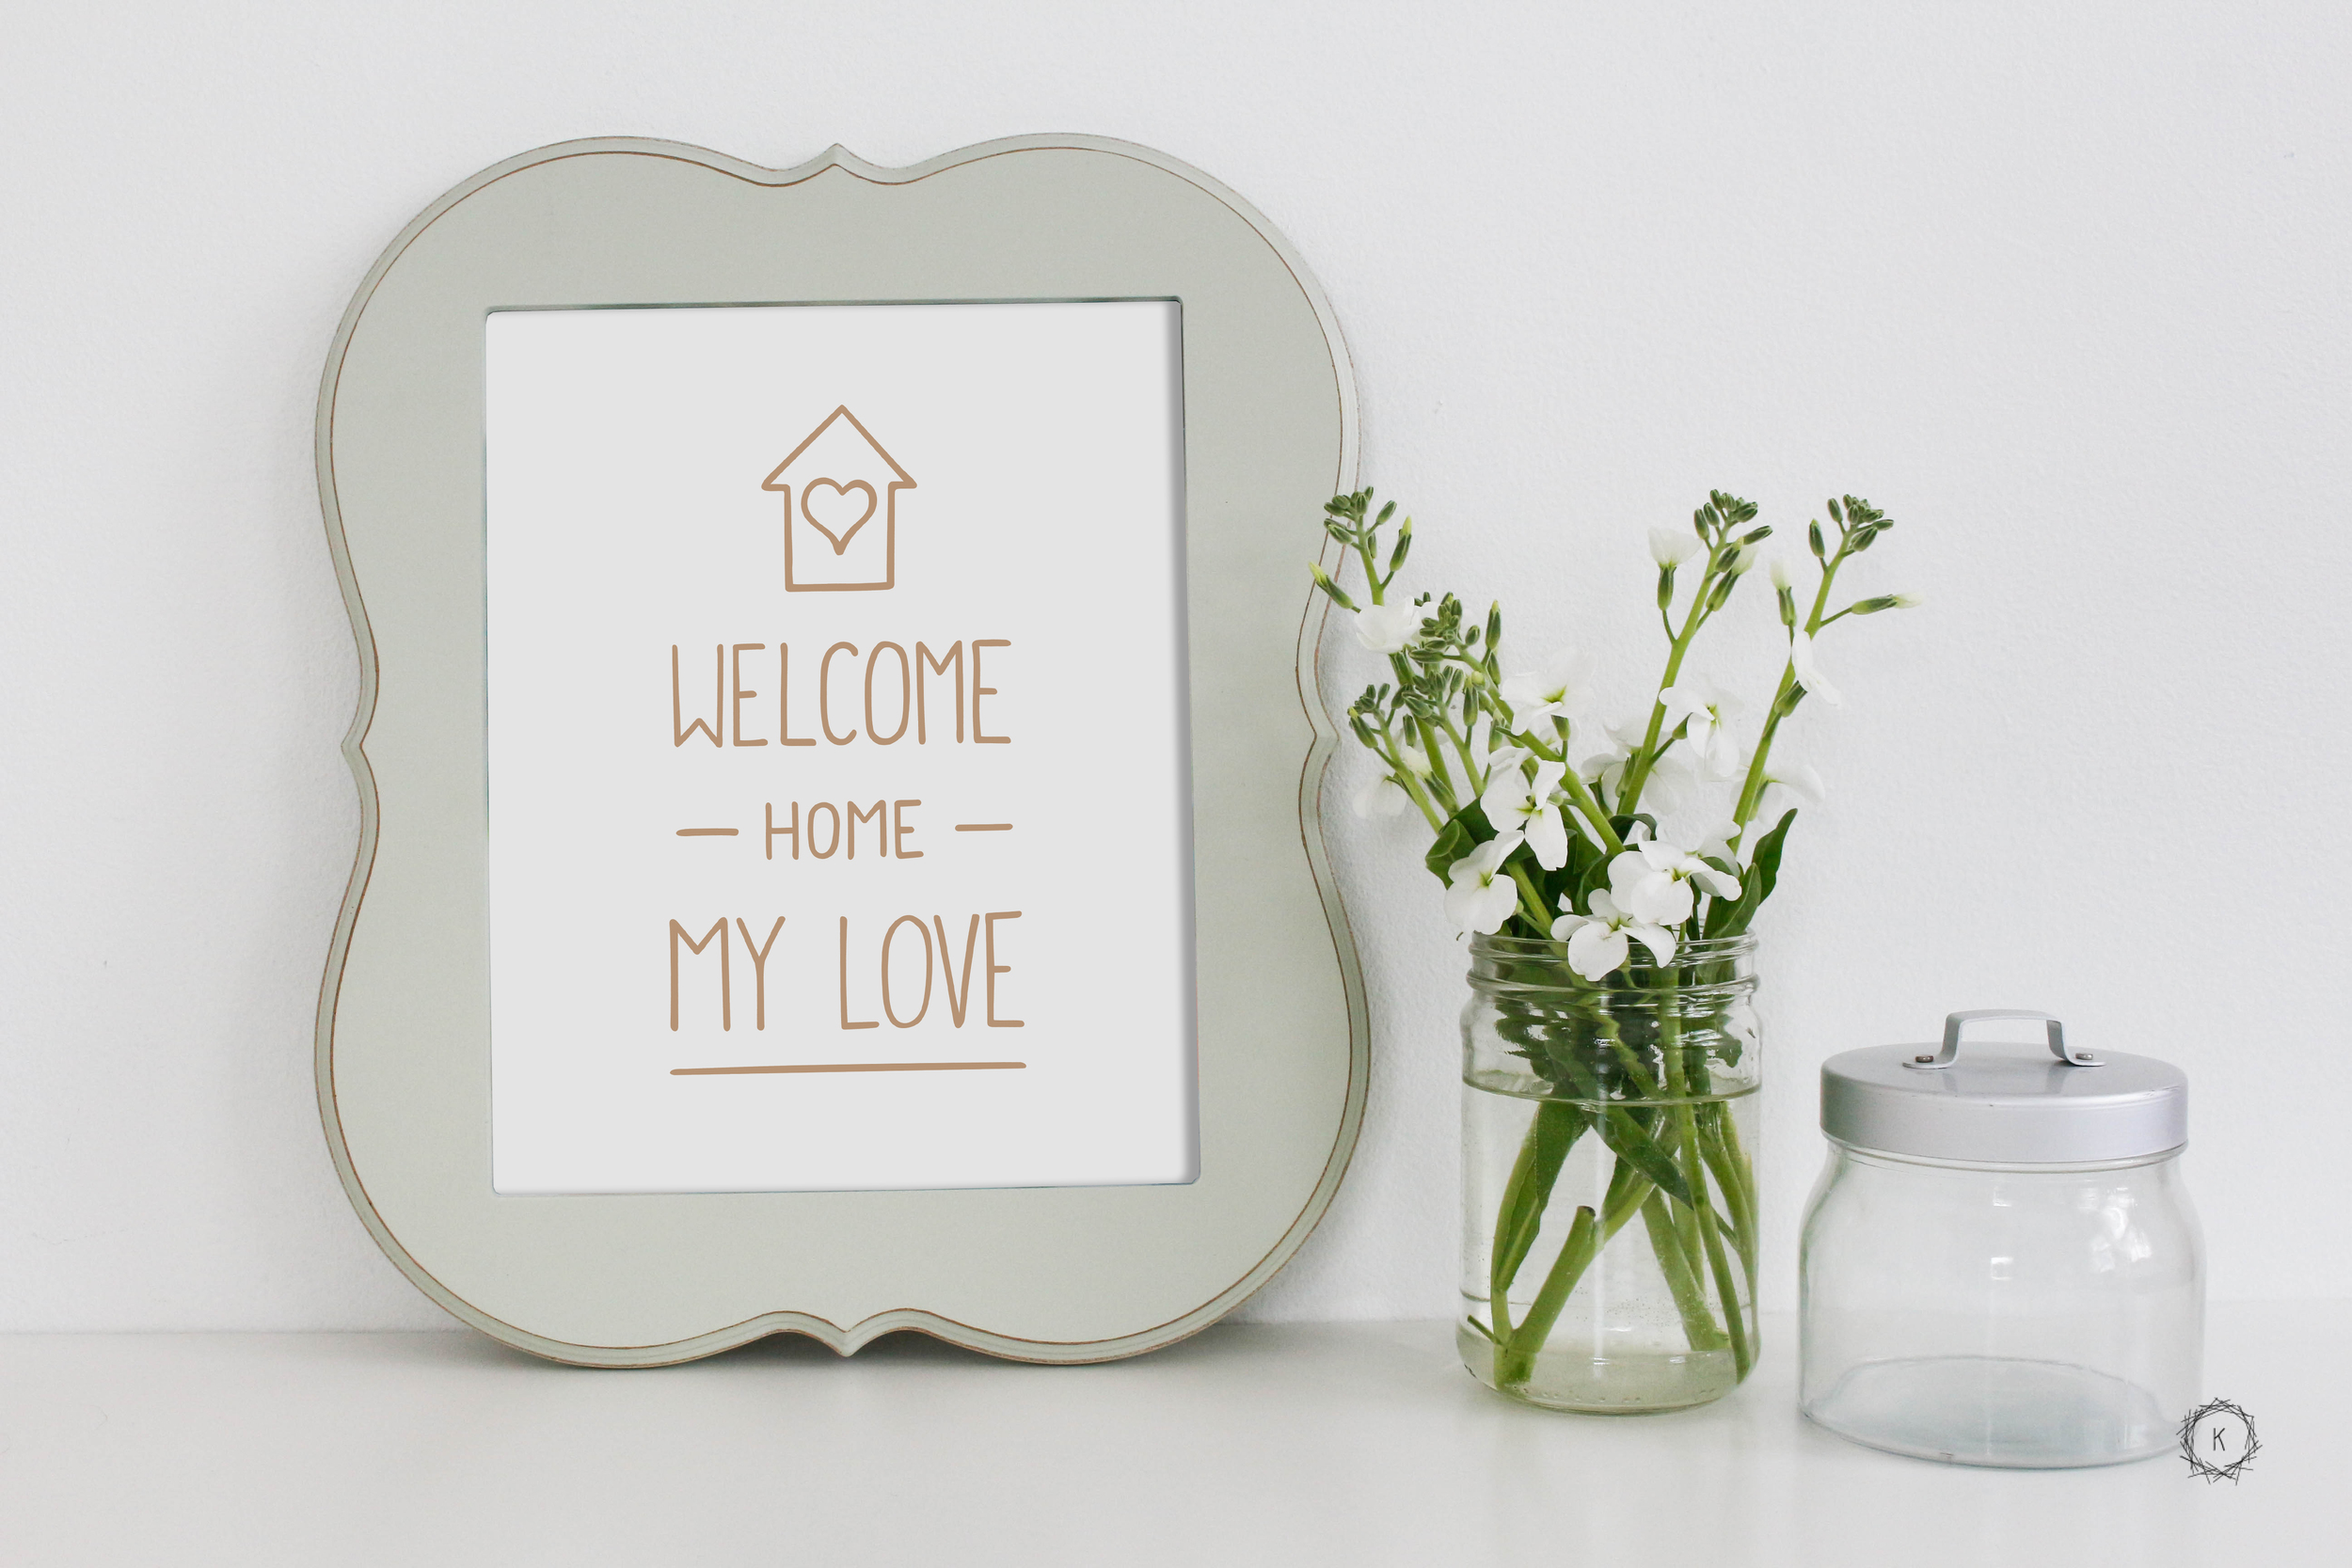 Welcome Home My Love // 8x10 Print // available at mkolbodesignstudio.etsy.com